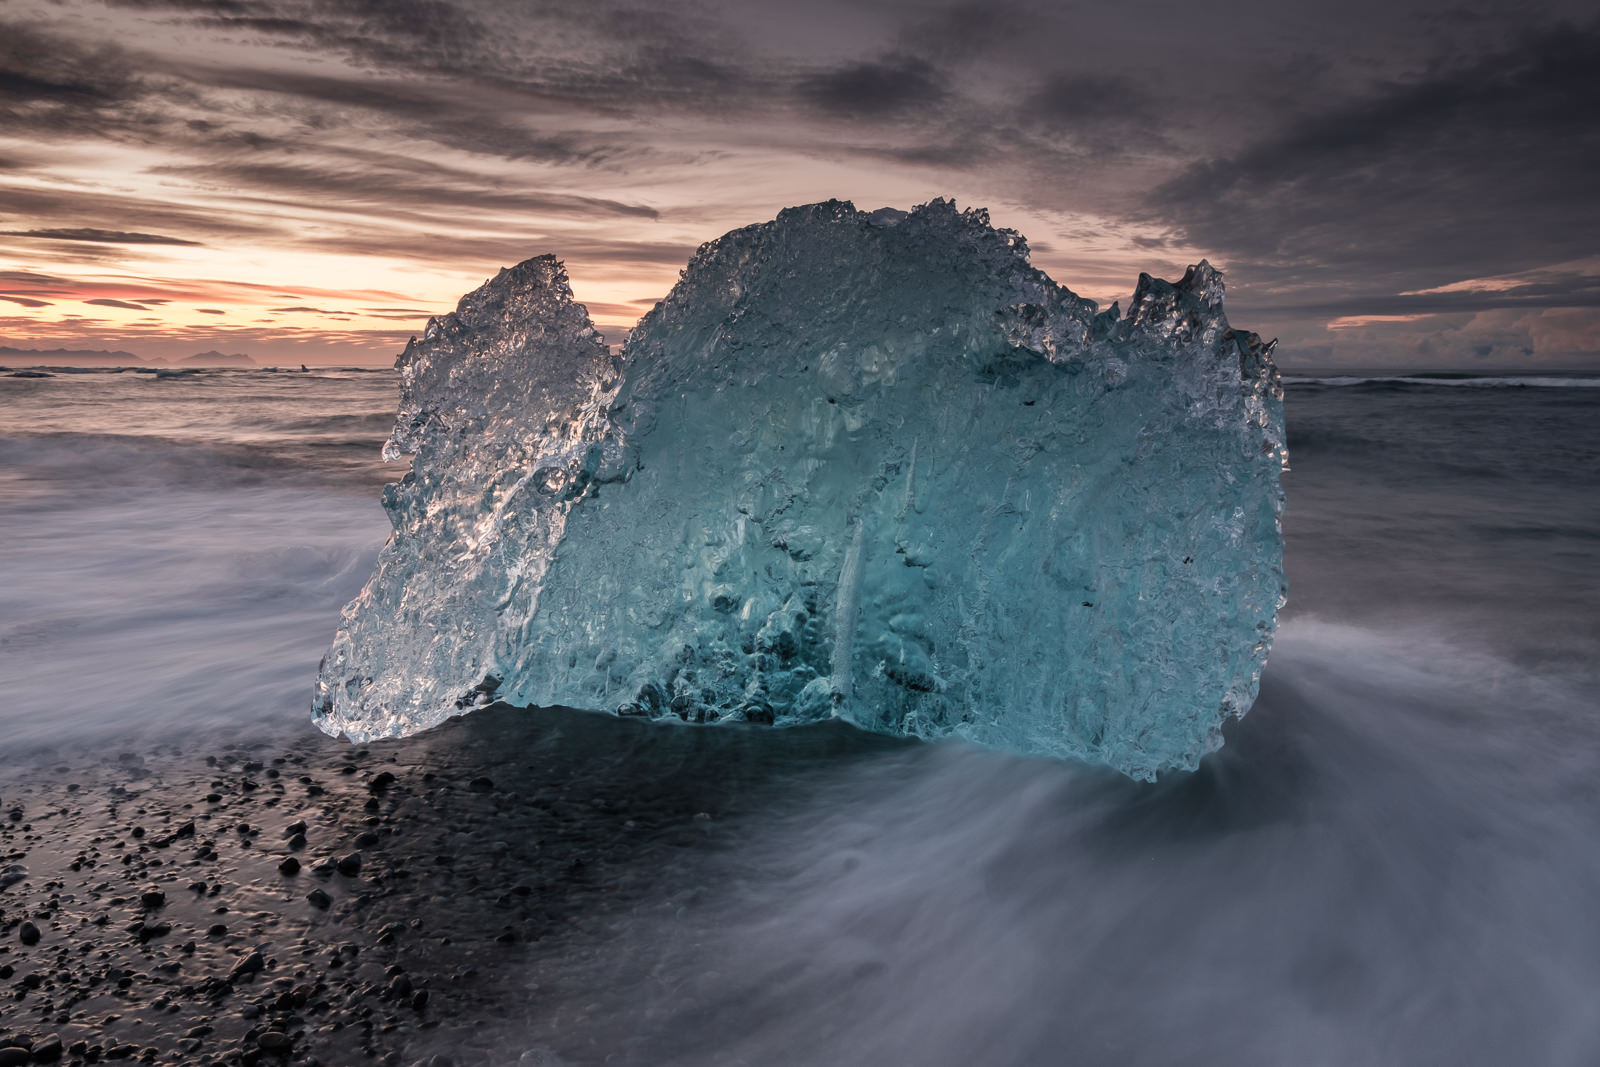 ice and water, at the Jökulsárlón diamond beach (XF 10-24mm f4 at 16mm 1s f16 ISO200)